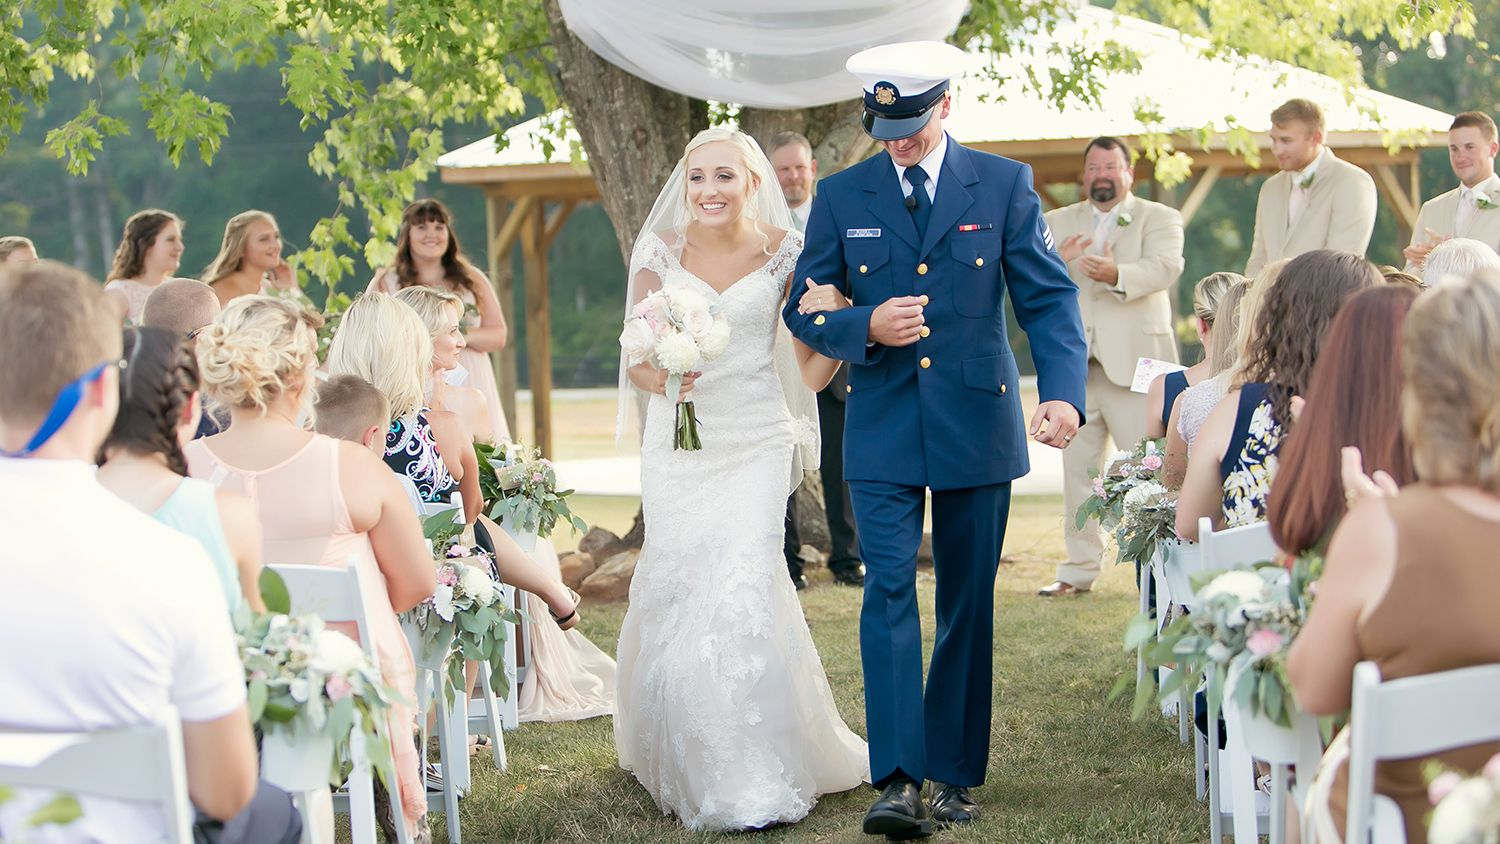 Bride And Groom with Ceremony in front of Maple Tree